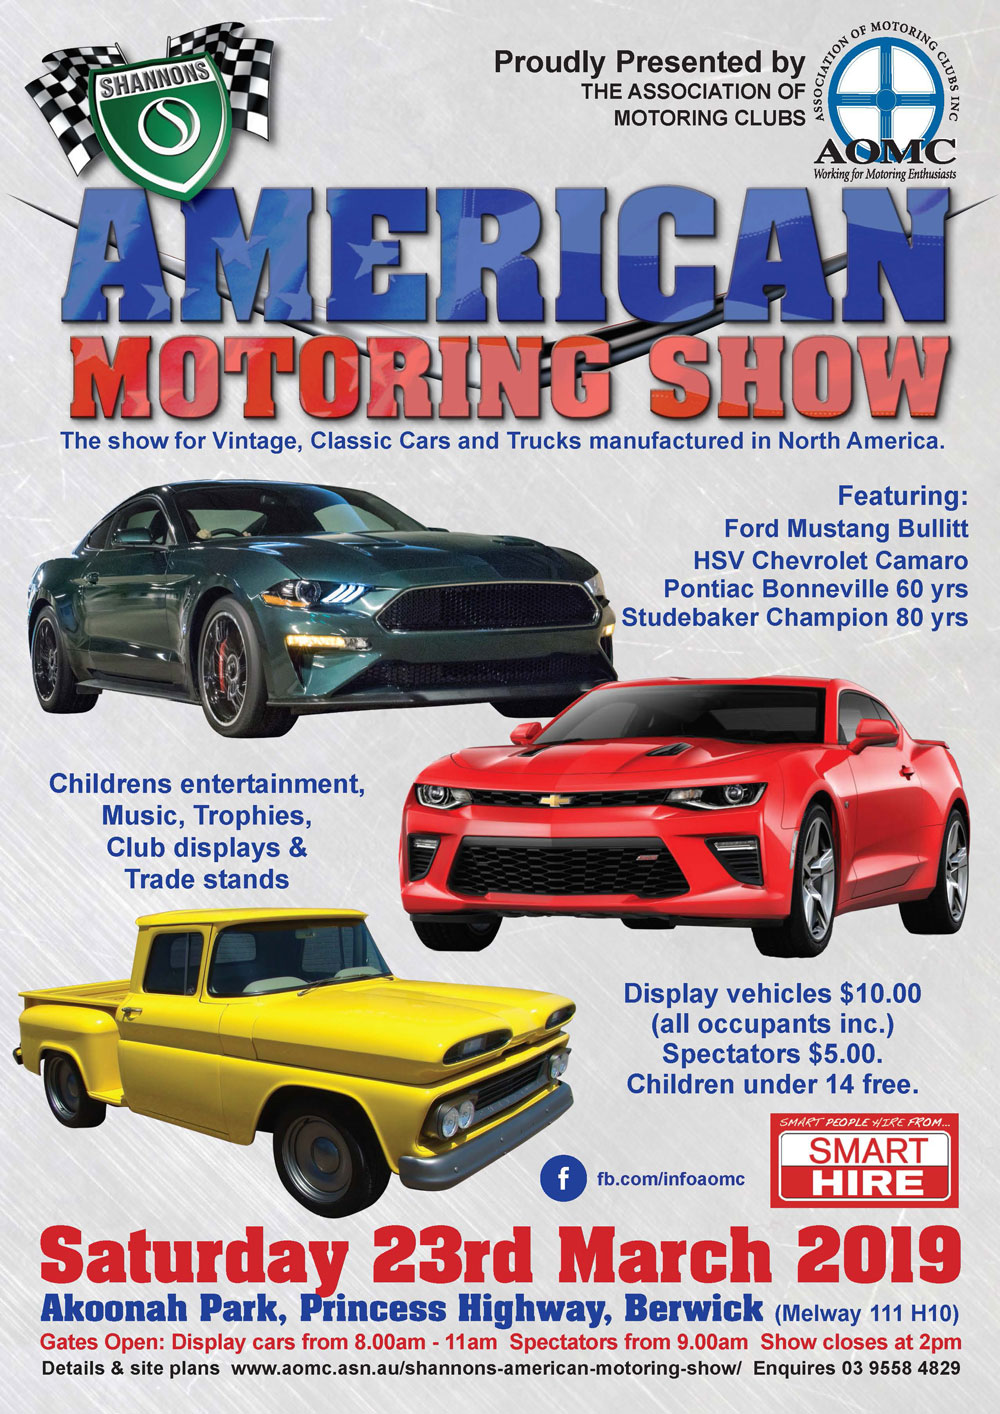 American-Motor-show-Flyer-Final-2019_Page_1.jpg